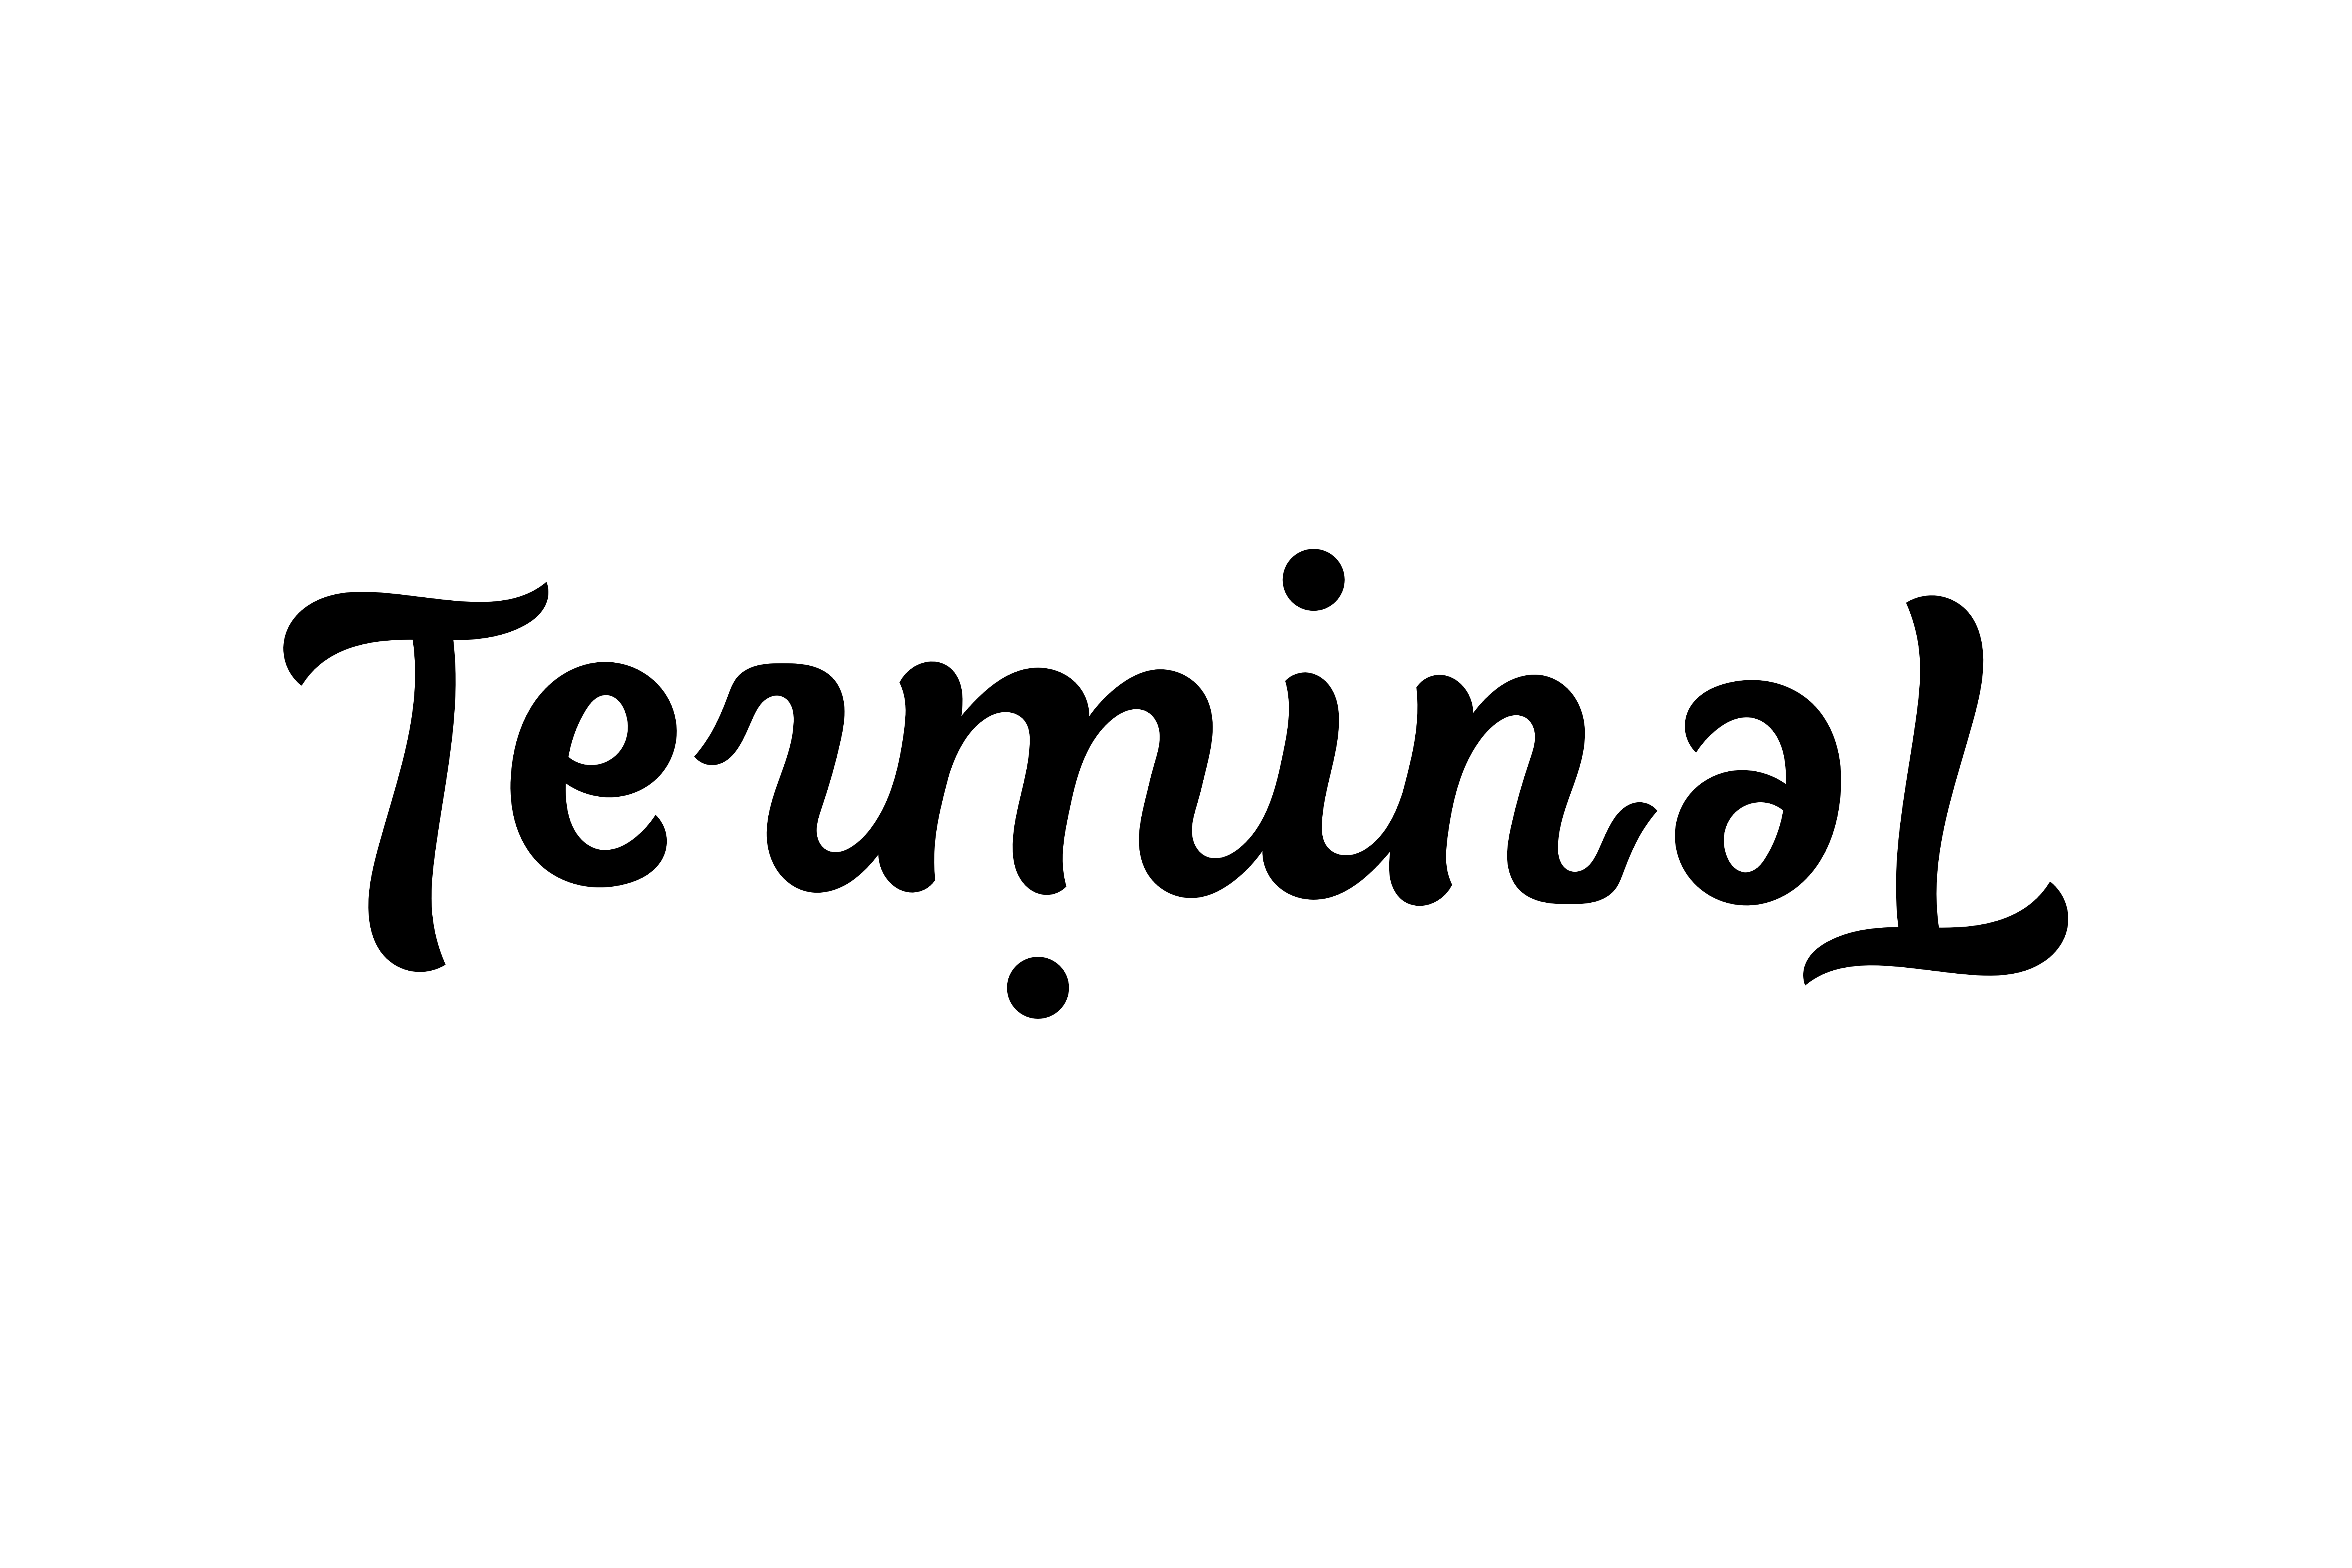 File:Ambigram Terminal png - Wikimedia Commons